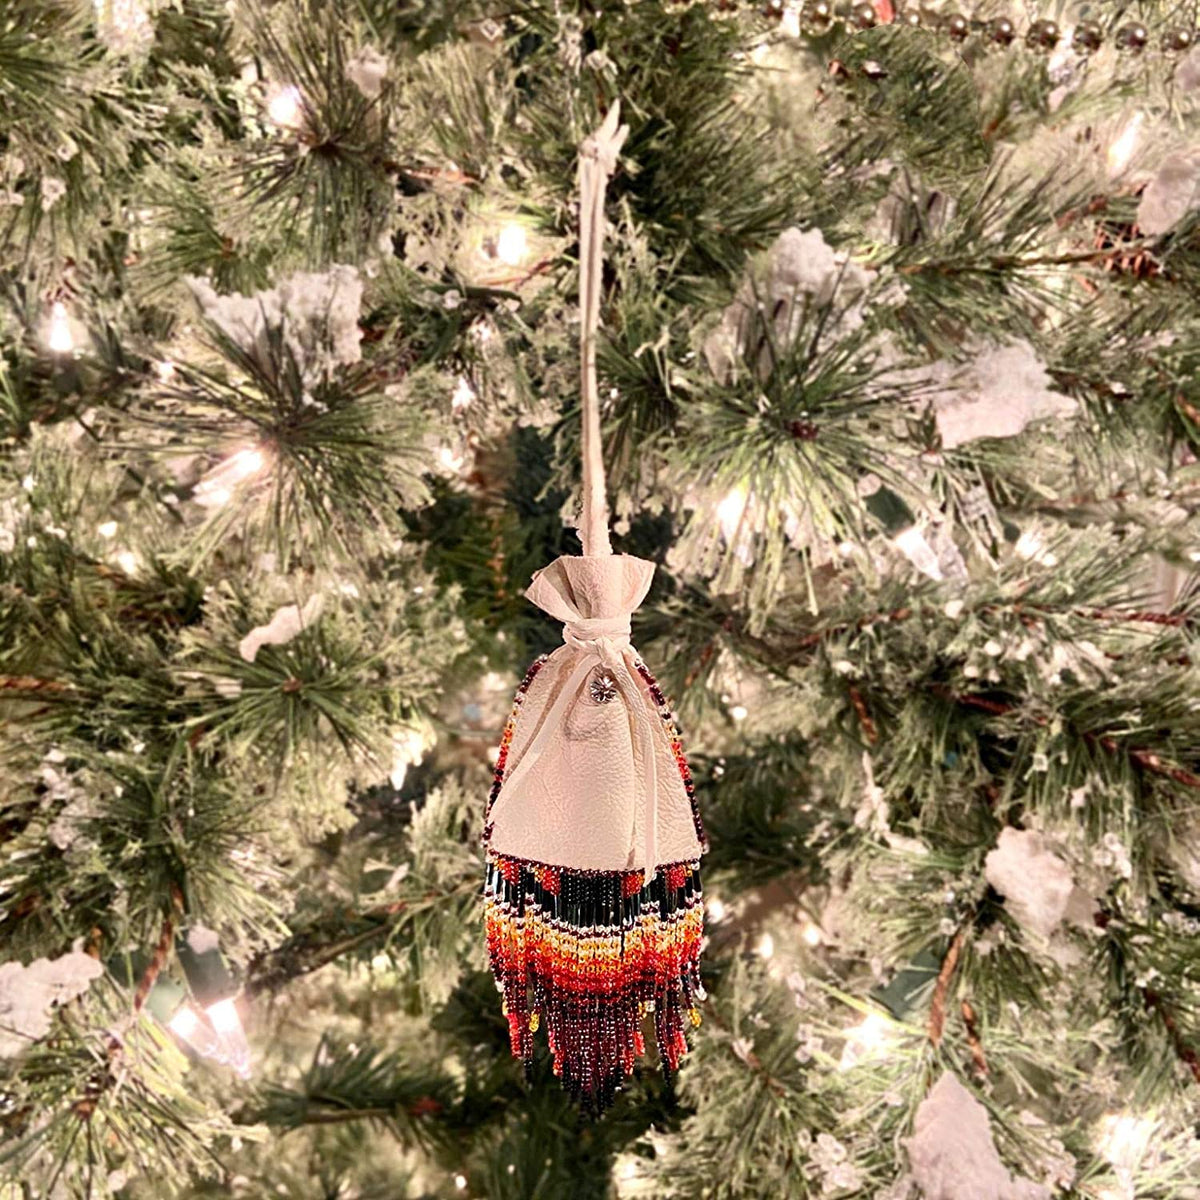 Decorative Native American Handmade Medicine Pouch Ornament, Leather and Traditional Bead Work with Fringe, Southwest Bohemian Home Decor, Unisex, Made in New Mexico, One of a Kind